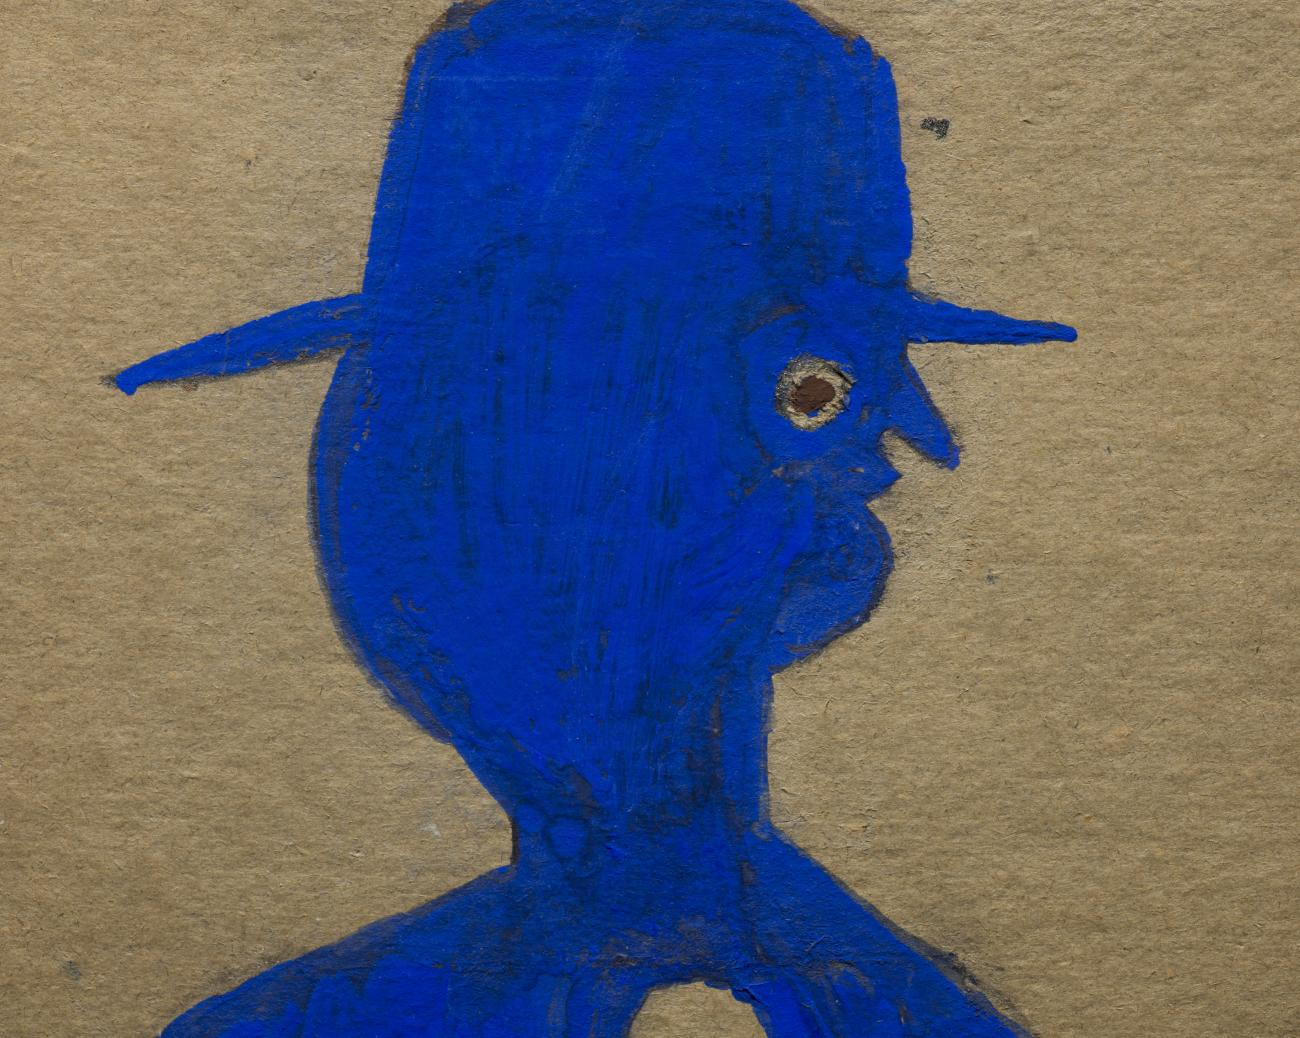 This is a detail image of Bill Traylor's drawing of a blue man with a hat and button down shirt.